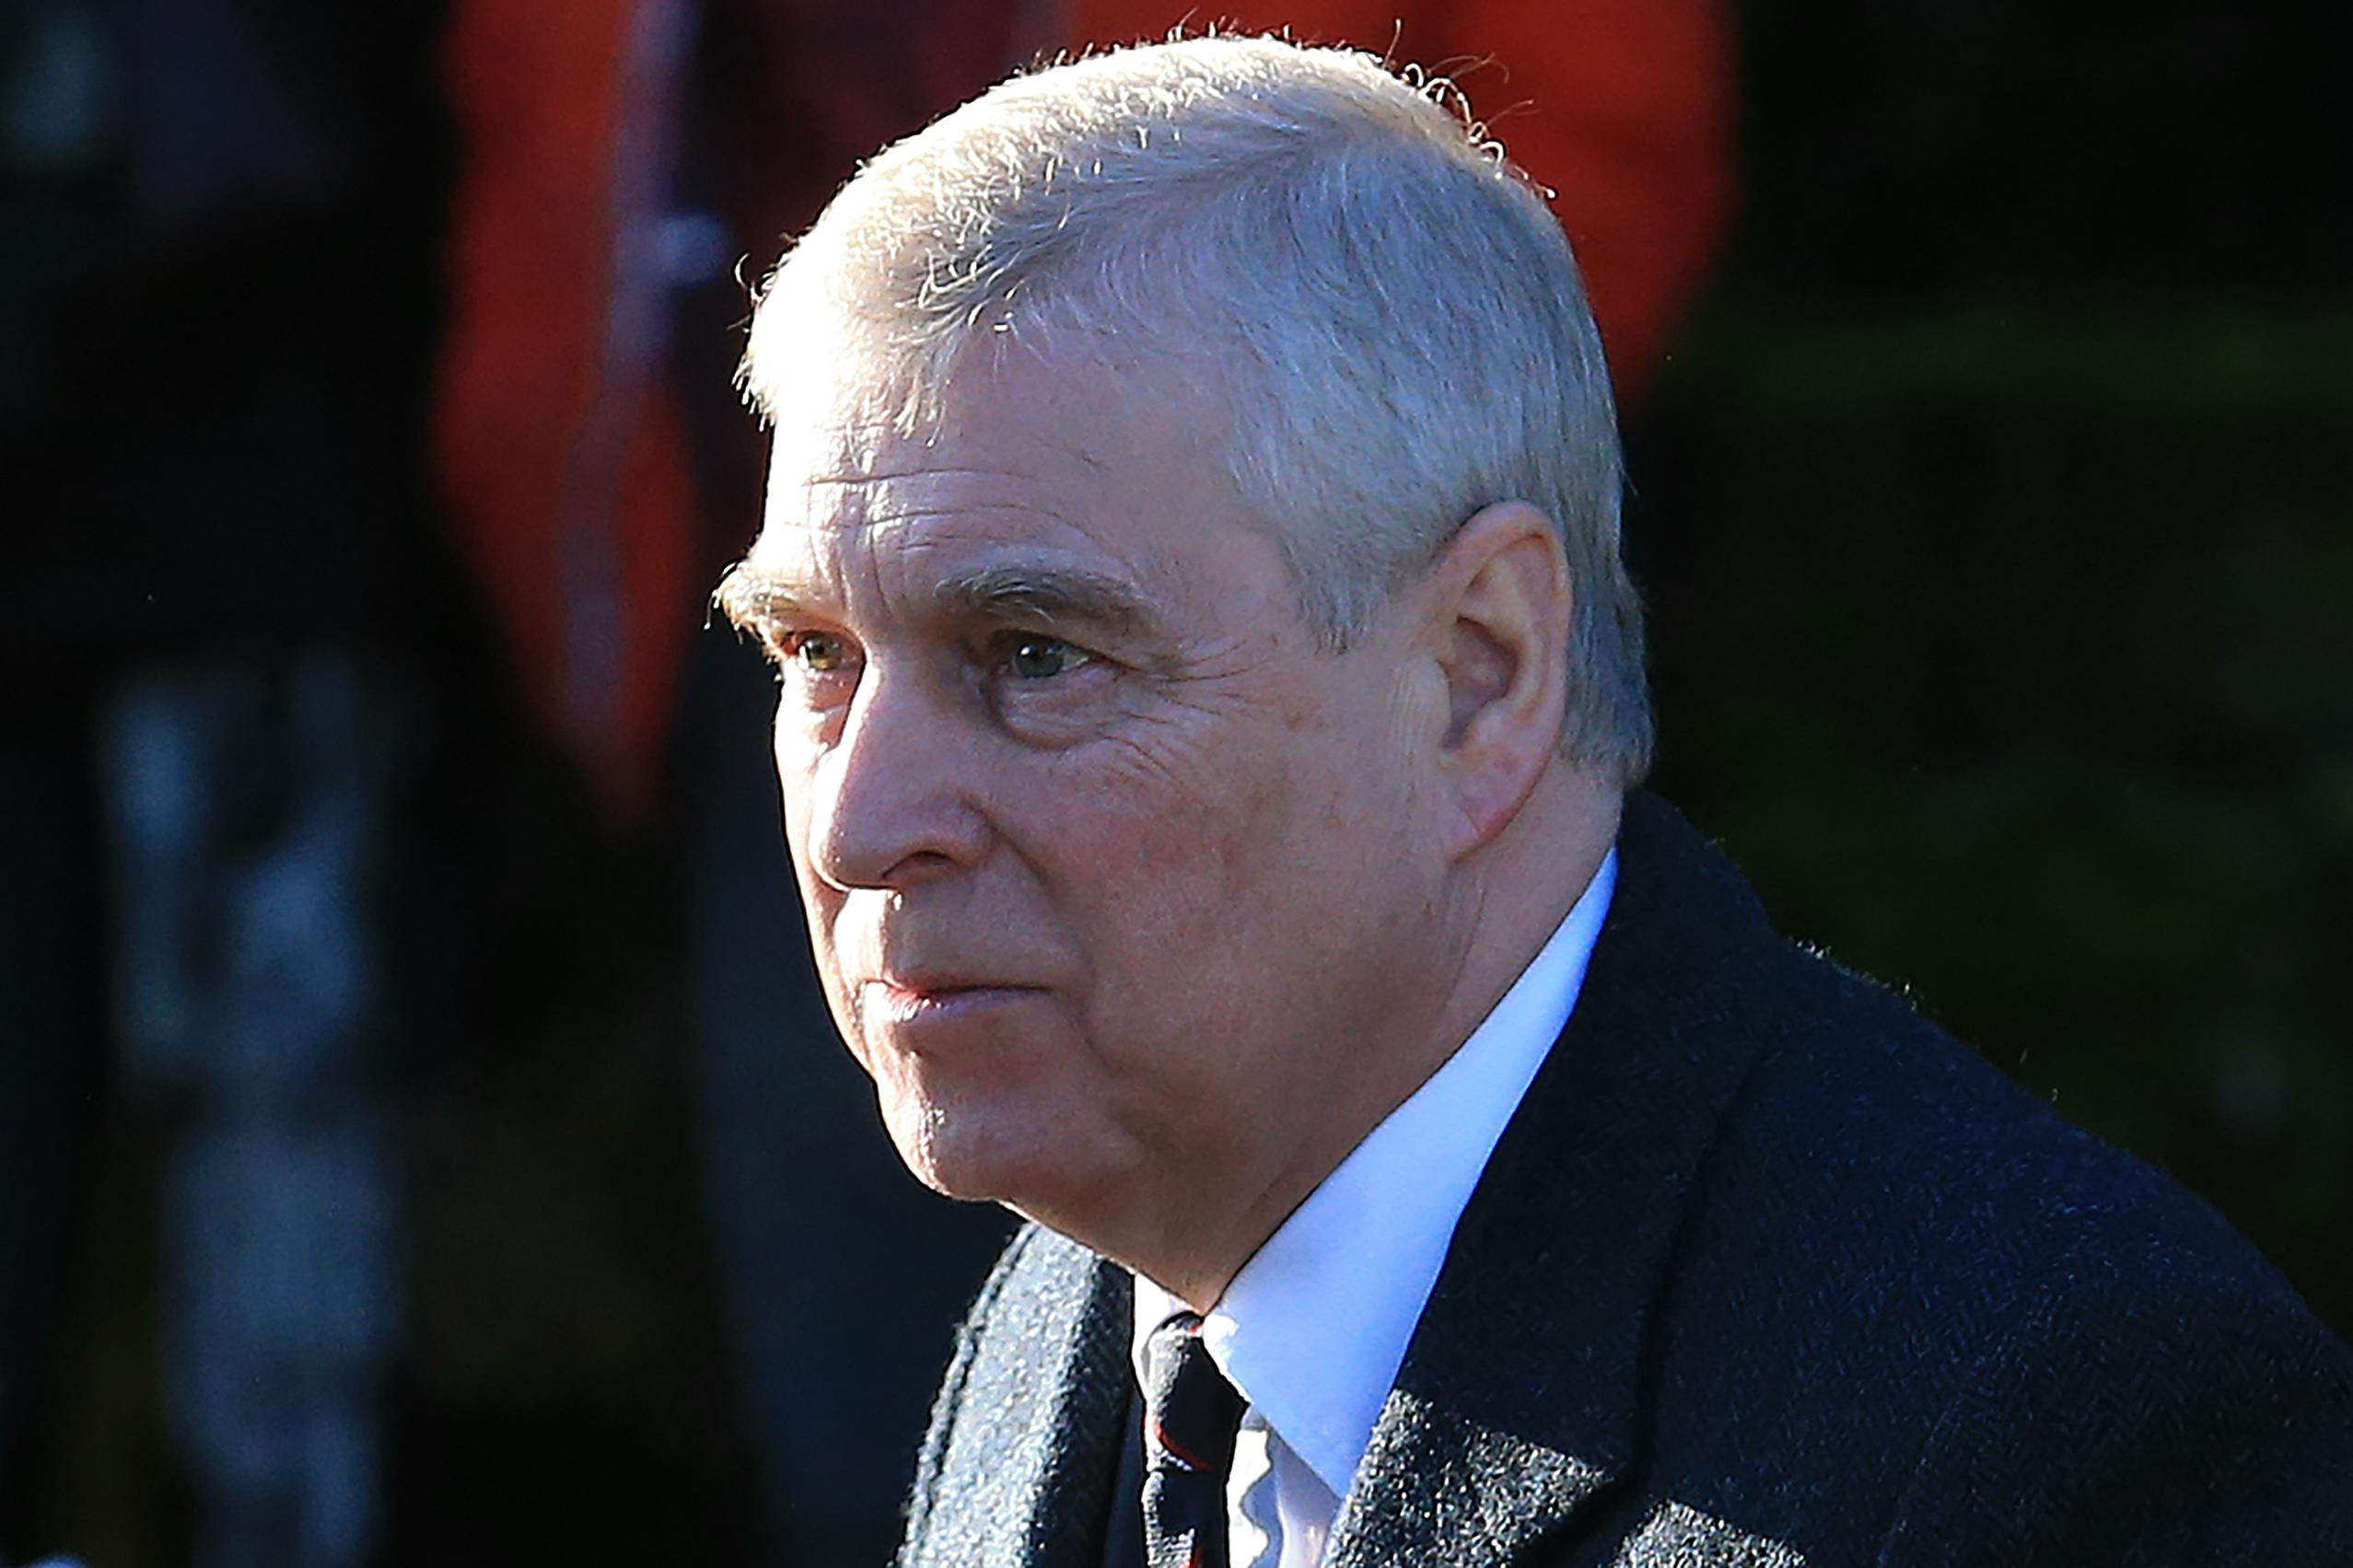 UK government won't fly flags for Prince Andrew's 60th birthday